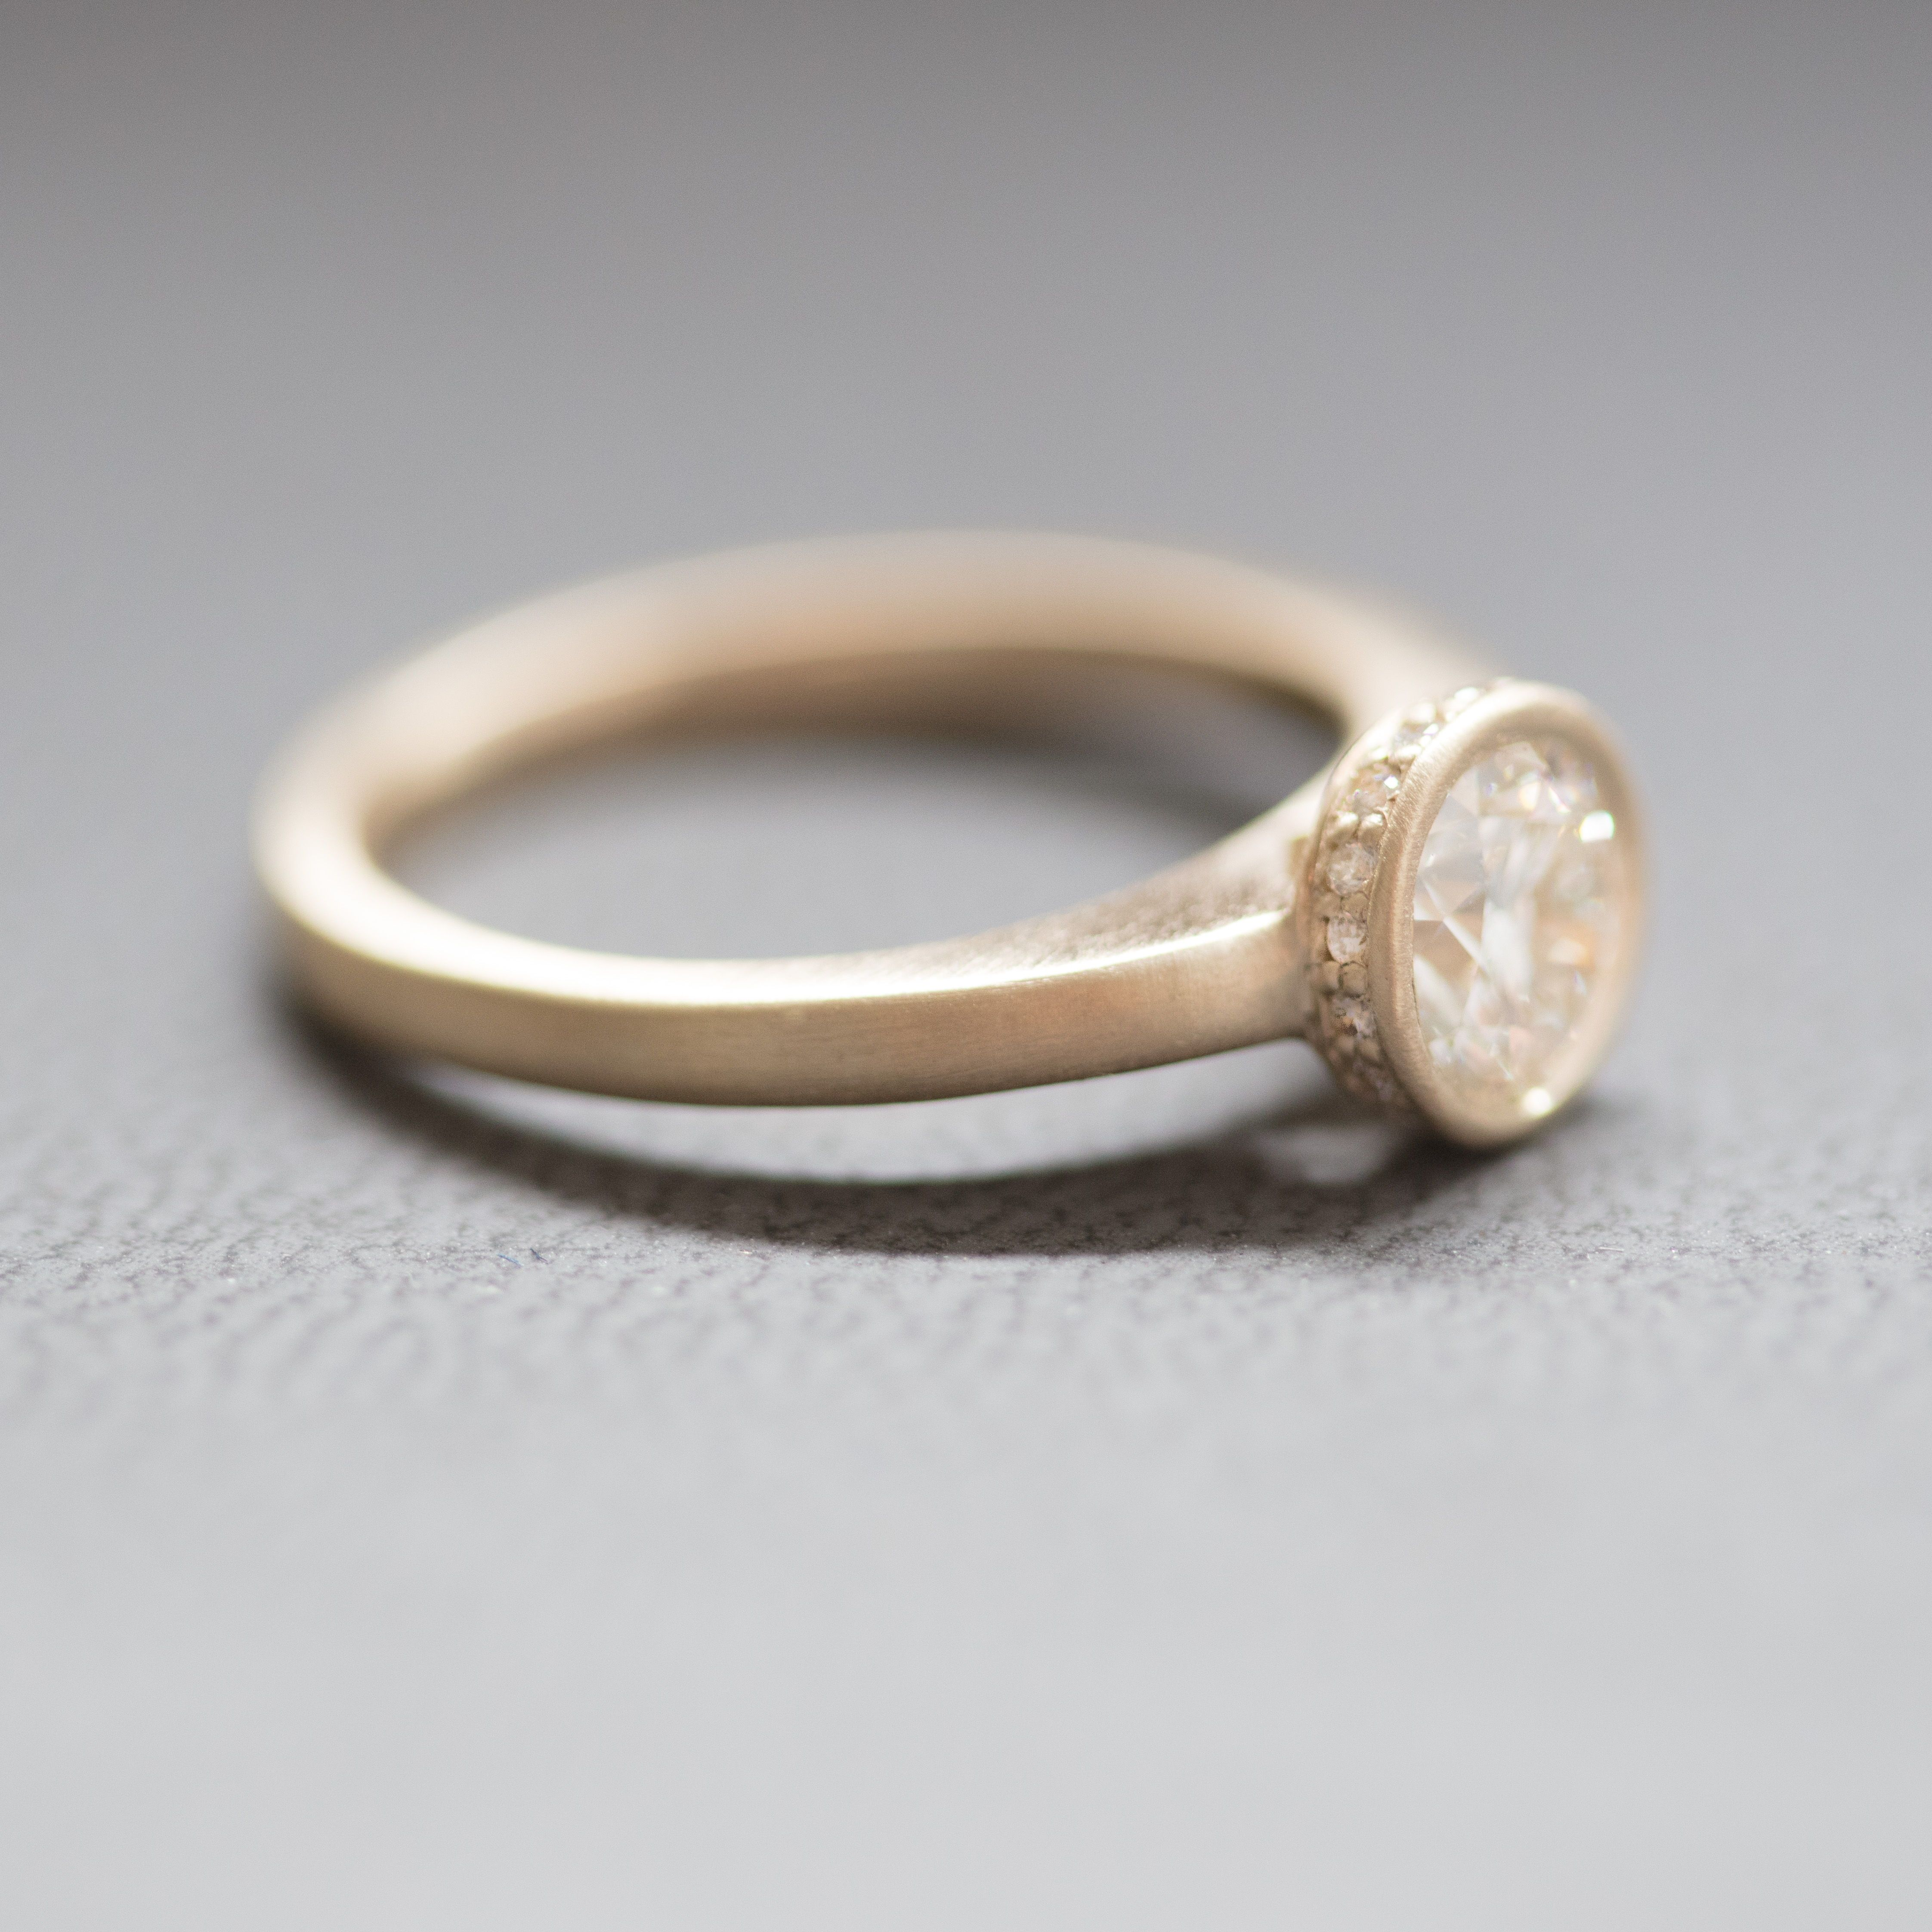 Rebecca Overmann Diamonds Unique And Elegant Engagement Rings All